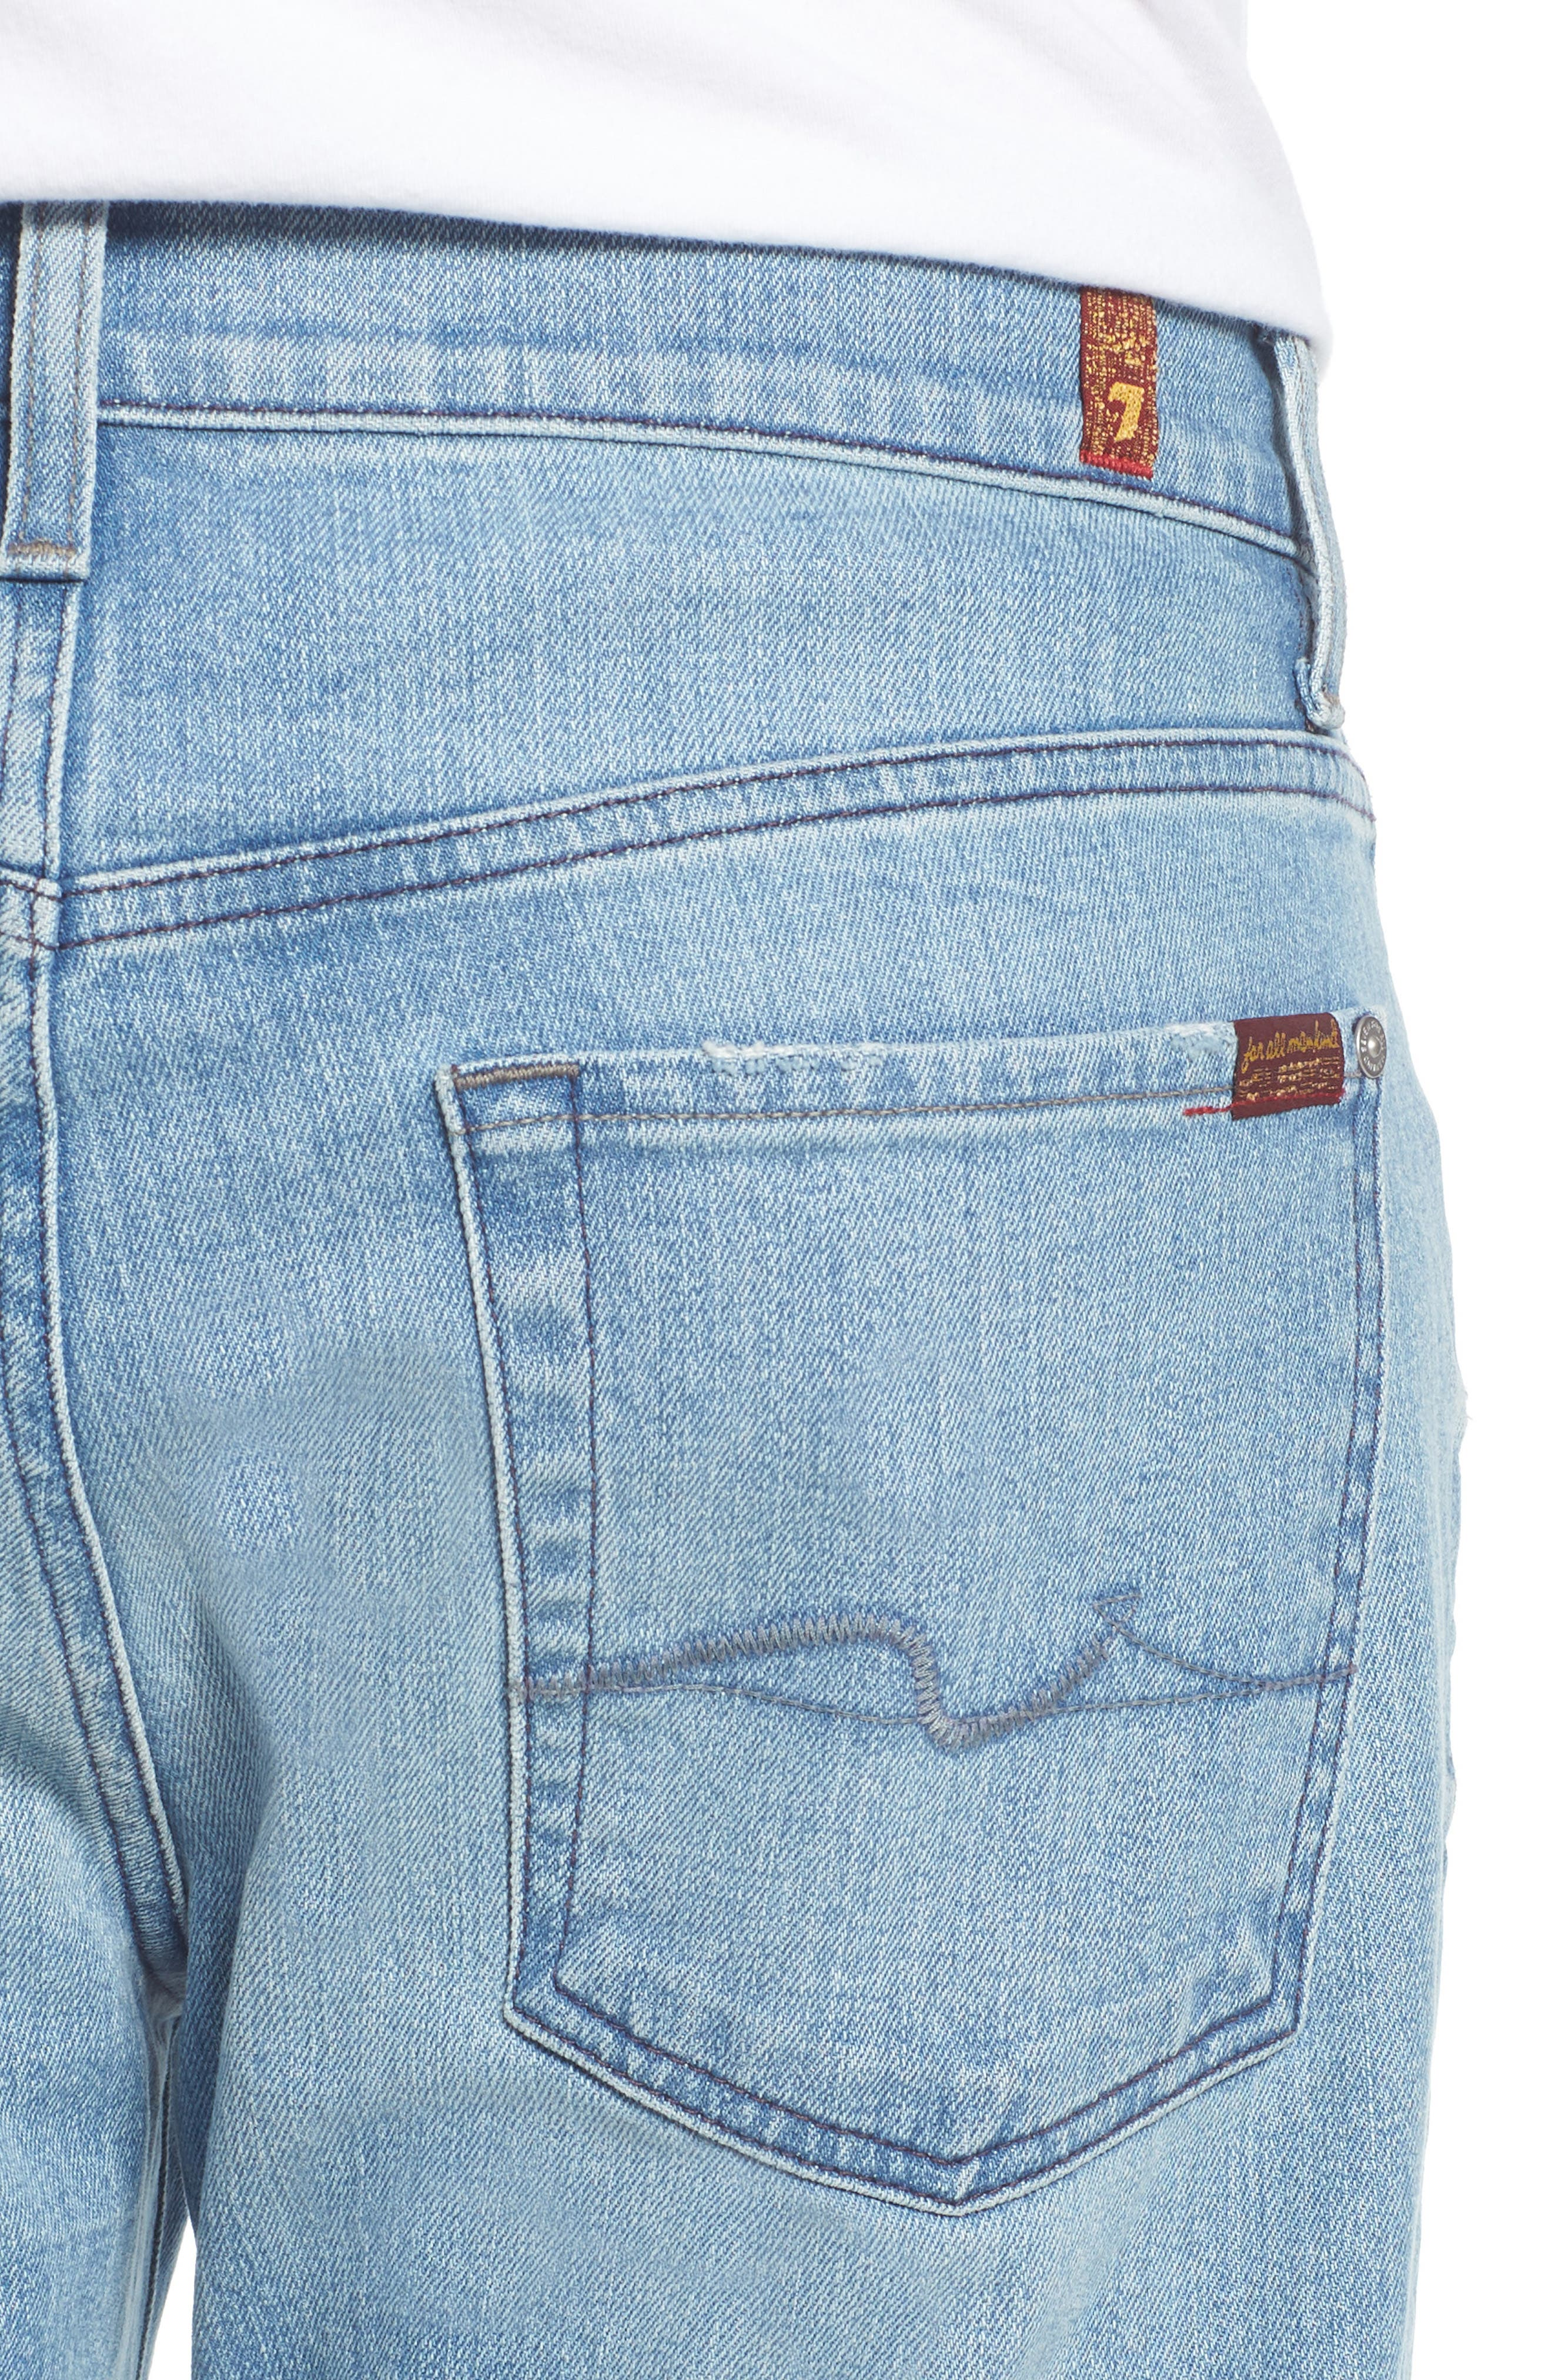 Austyn Relaxed Fit Jeans,                             Alternate thumbnail 4, color,                             401